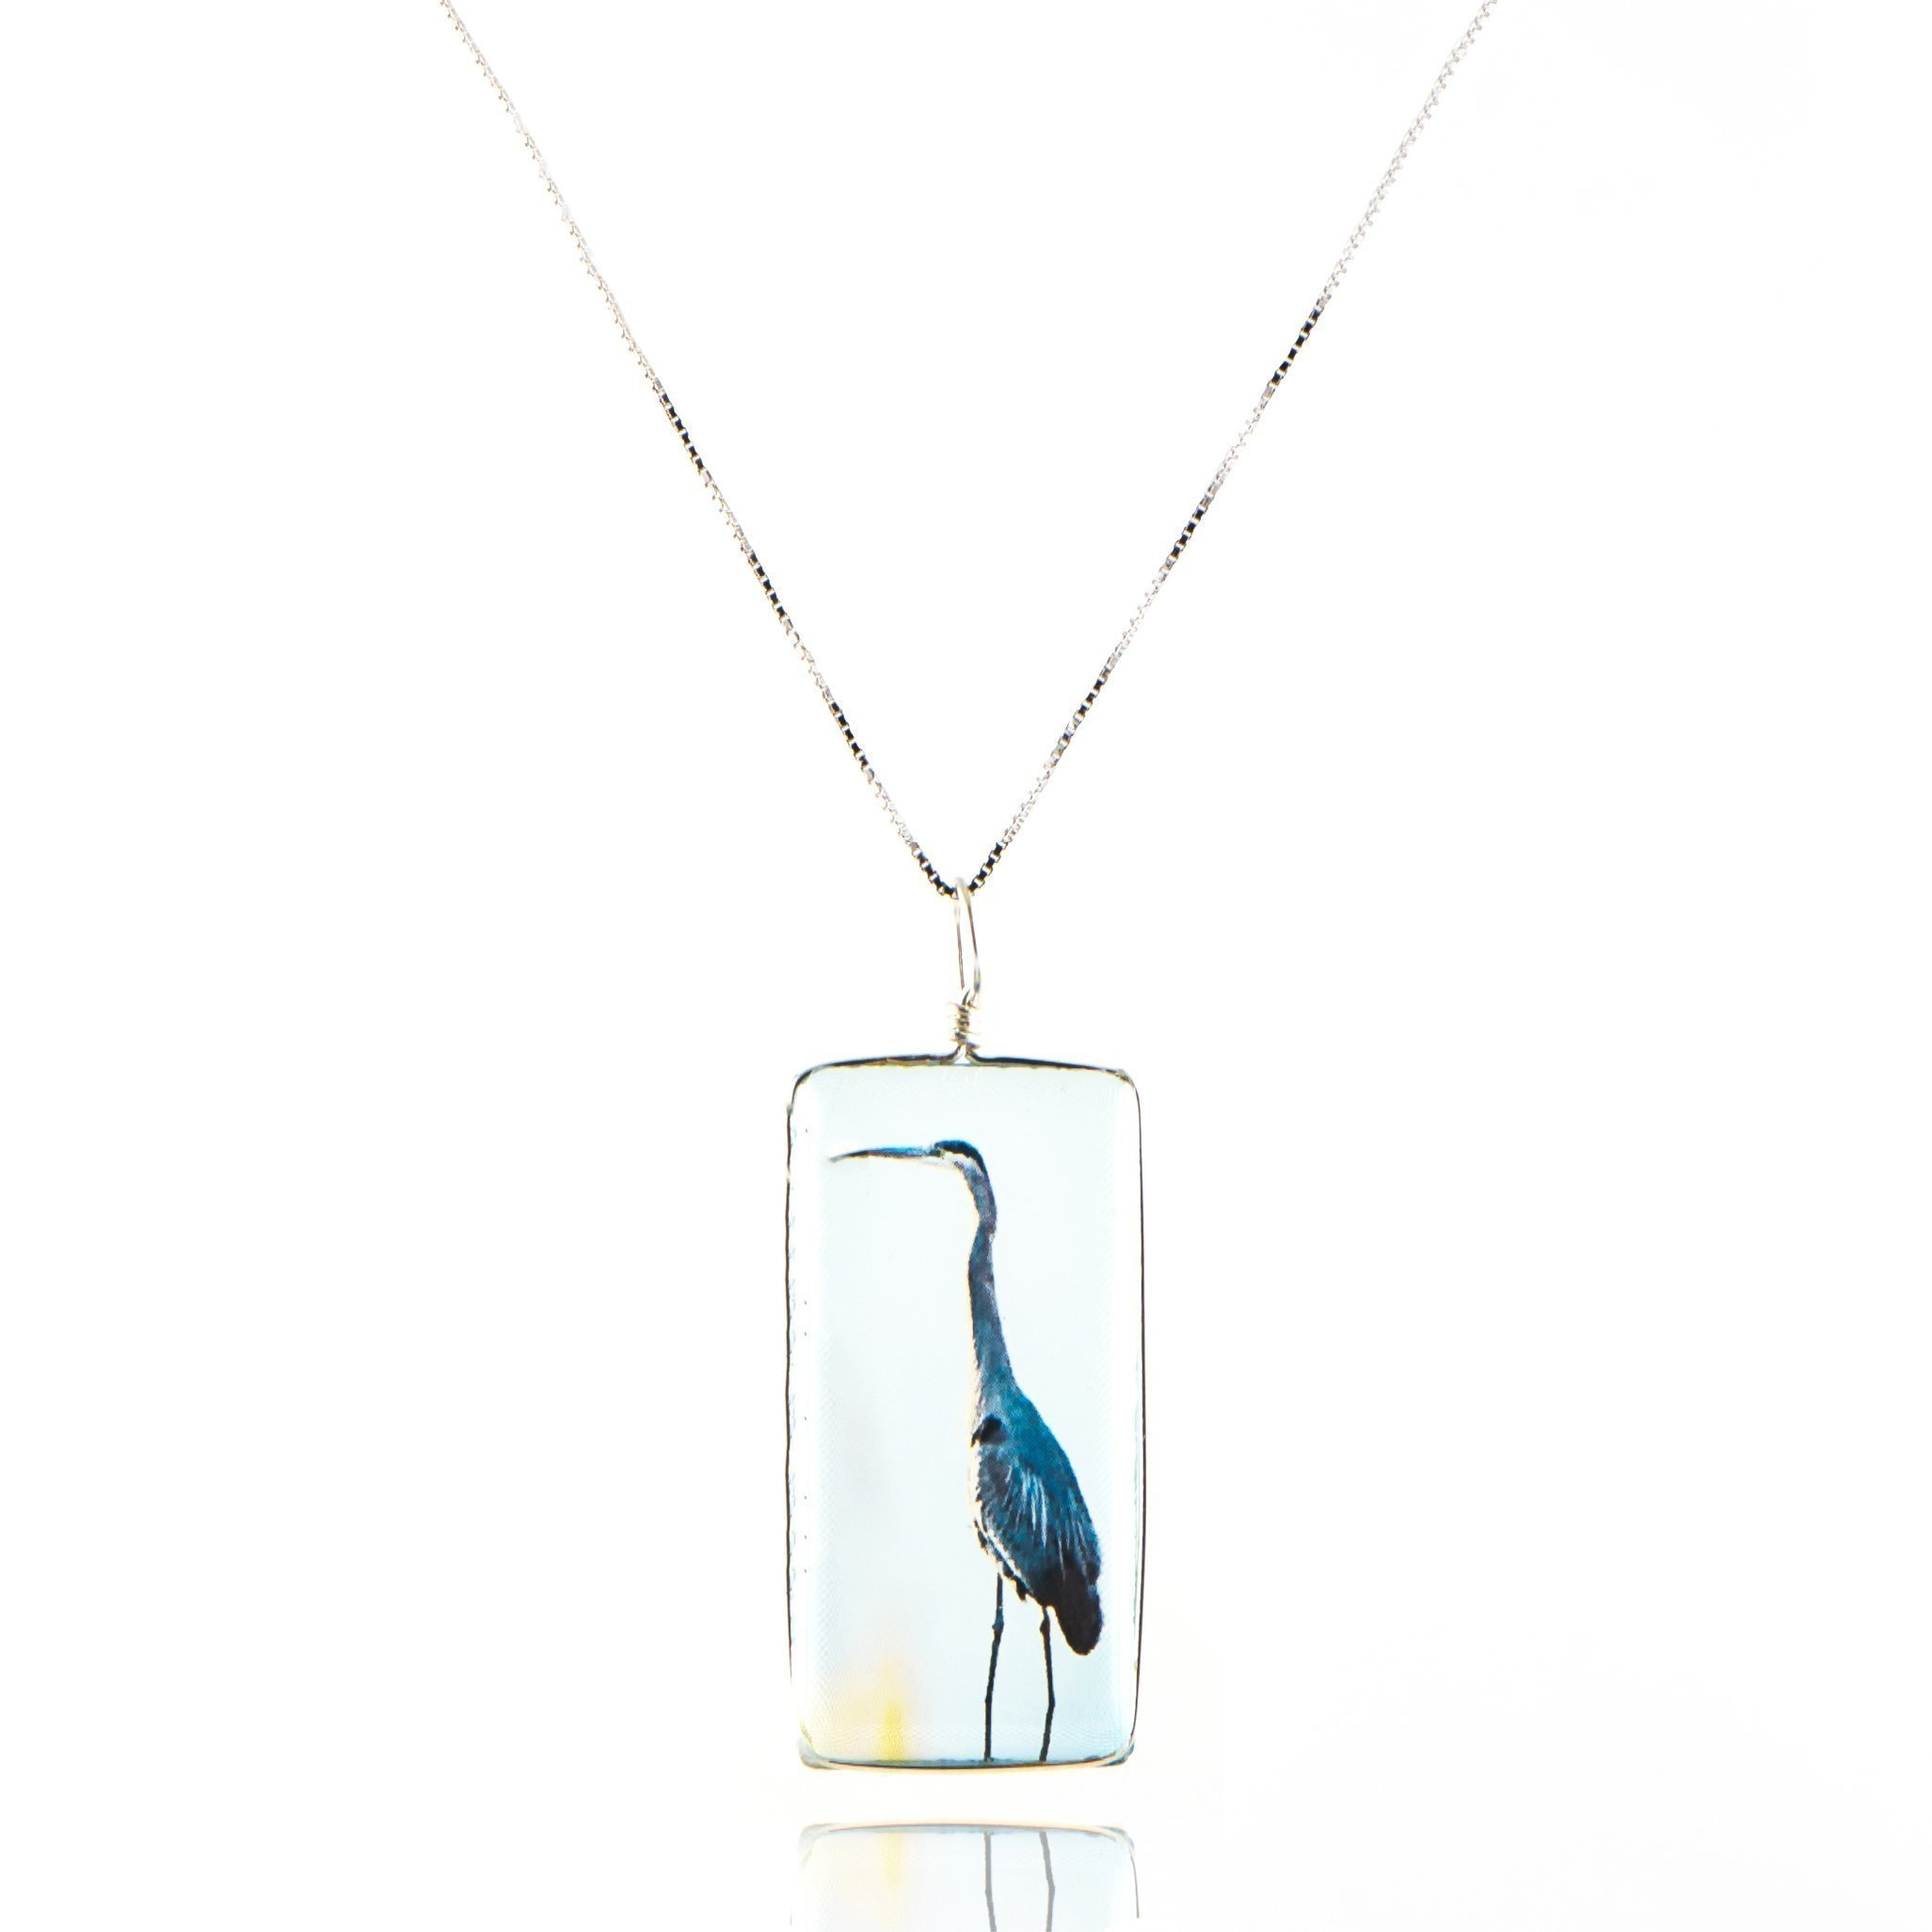 branch on little orders sterling lucky jewelry silver free product overstock shipping gold watches vermeil cute thailand golden pendant over a bird necklace